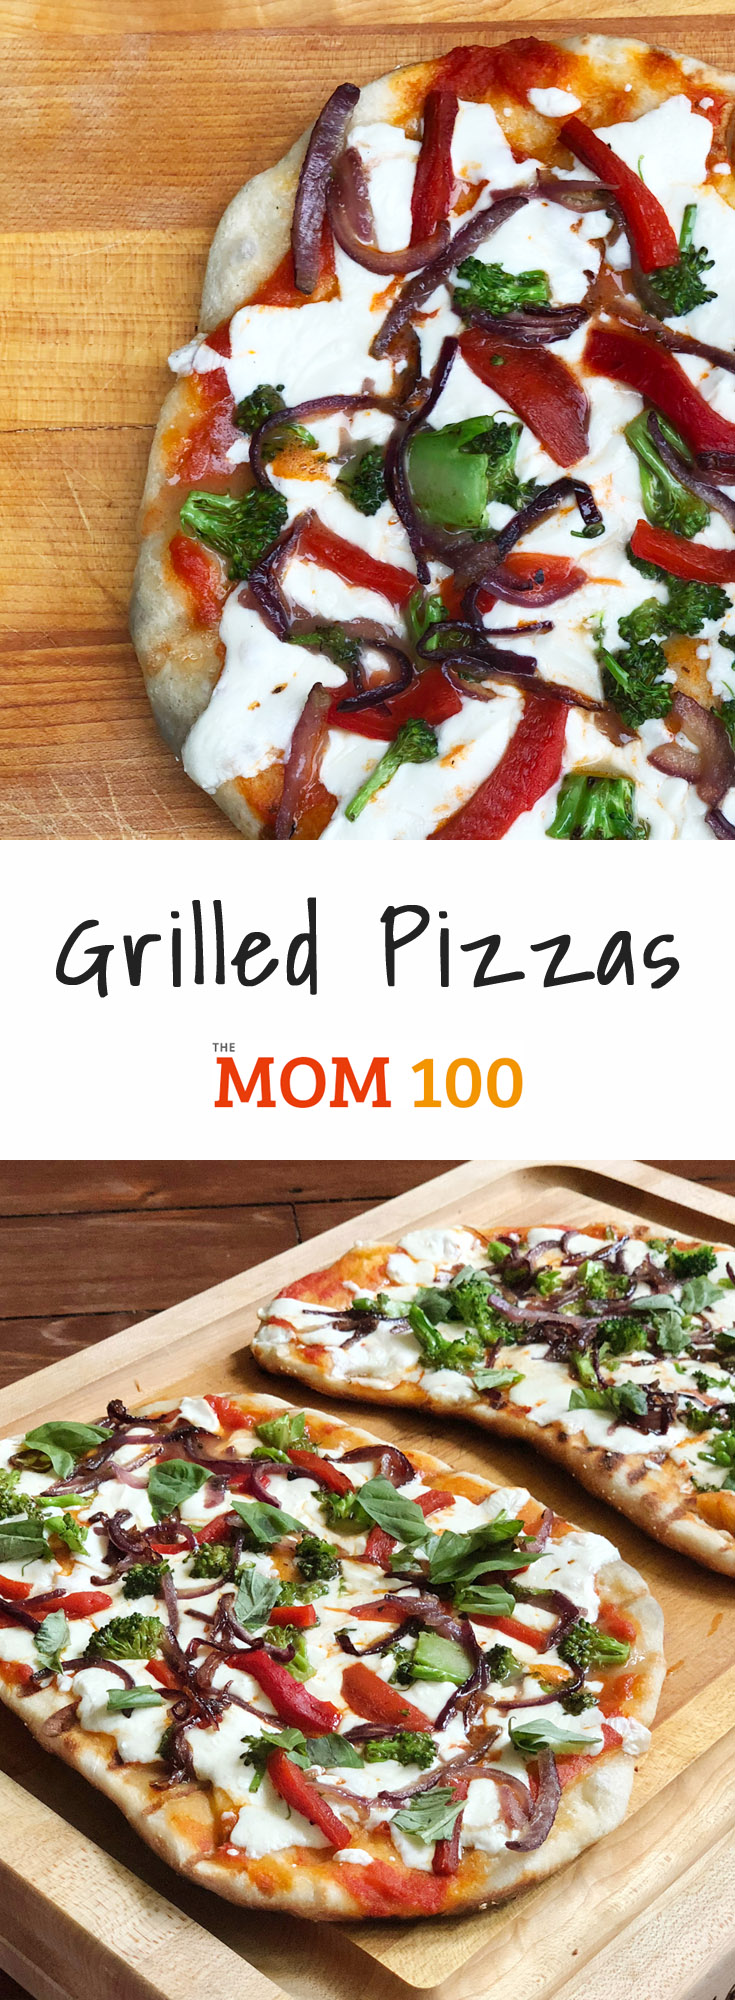 Grilled pizzas: If you want to make your kids' heads explode, pizza on the grill has the capacity to amaze and dazzle like few other dinners.